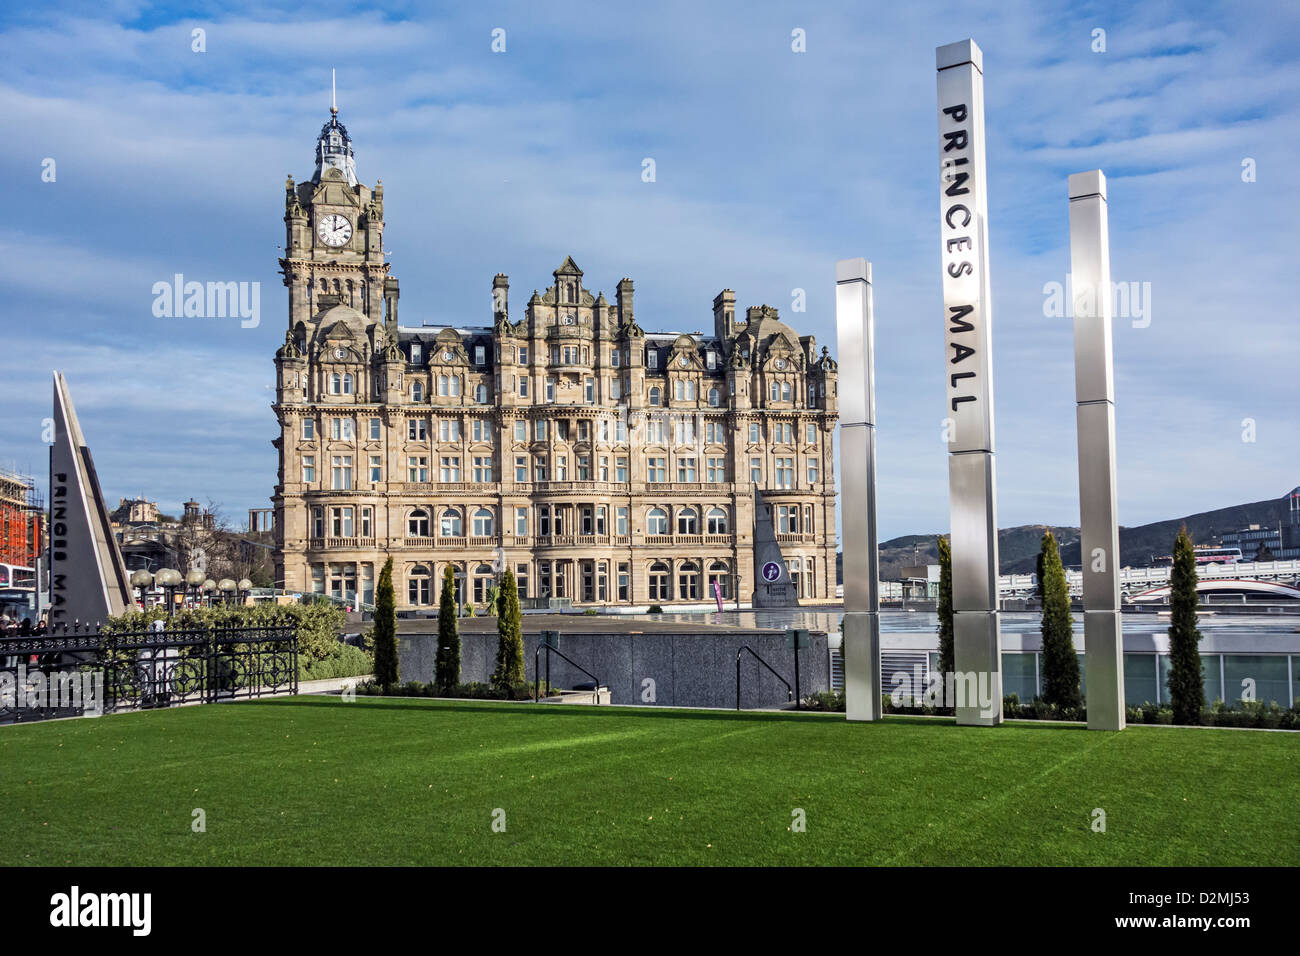 The Balmoral hotel and Princes Mall sign in central Edinburgh Scotland - Stock Image